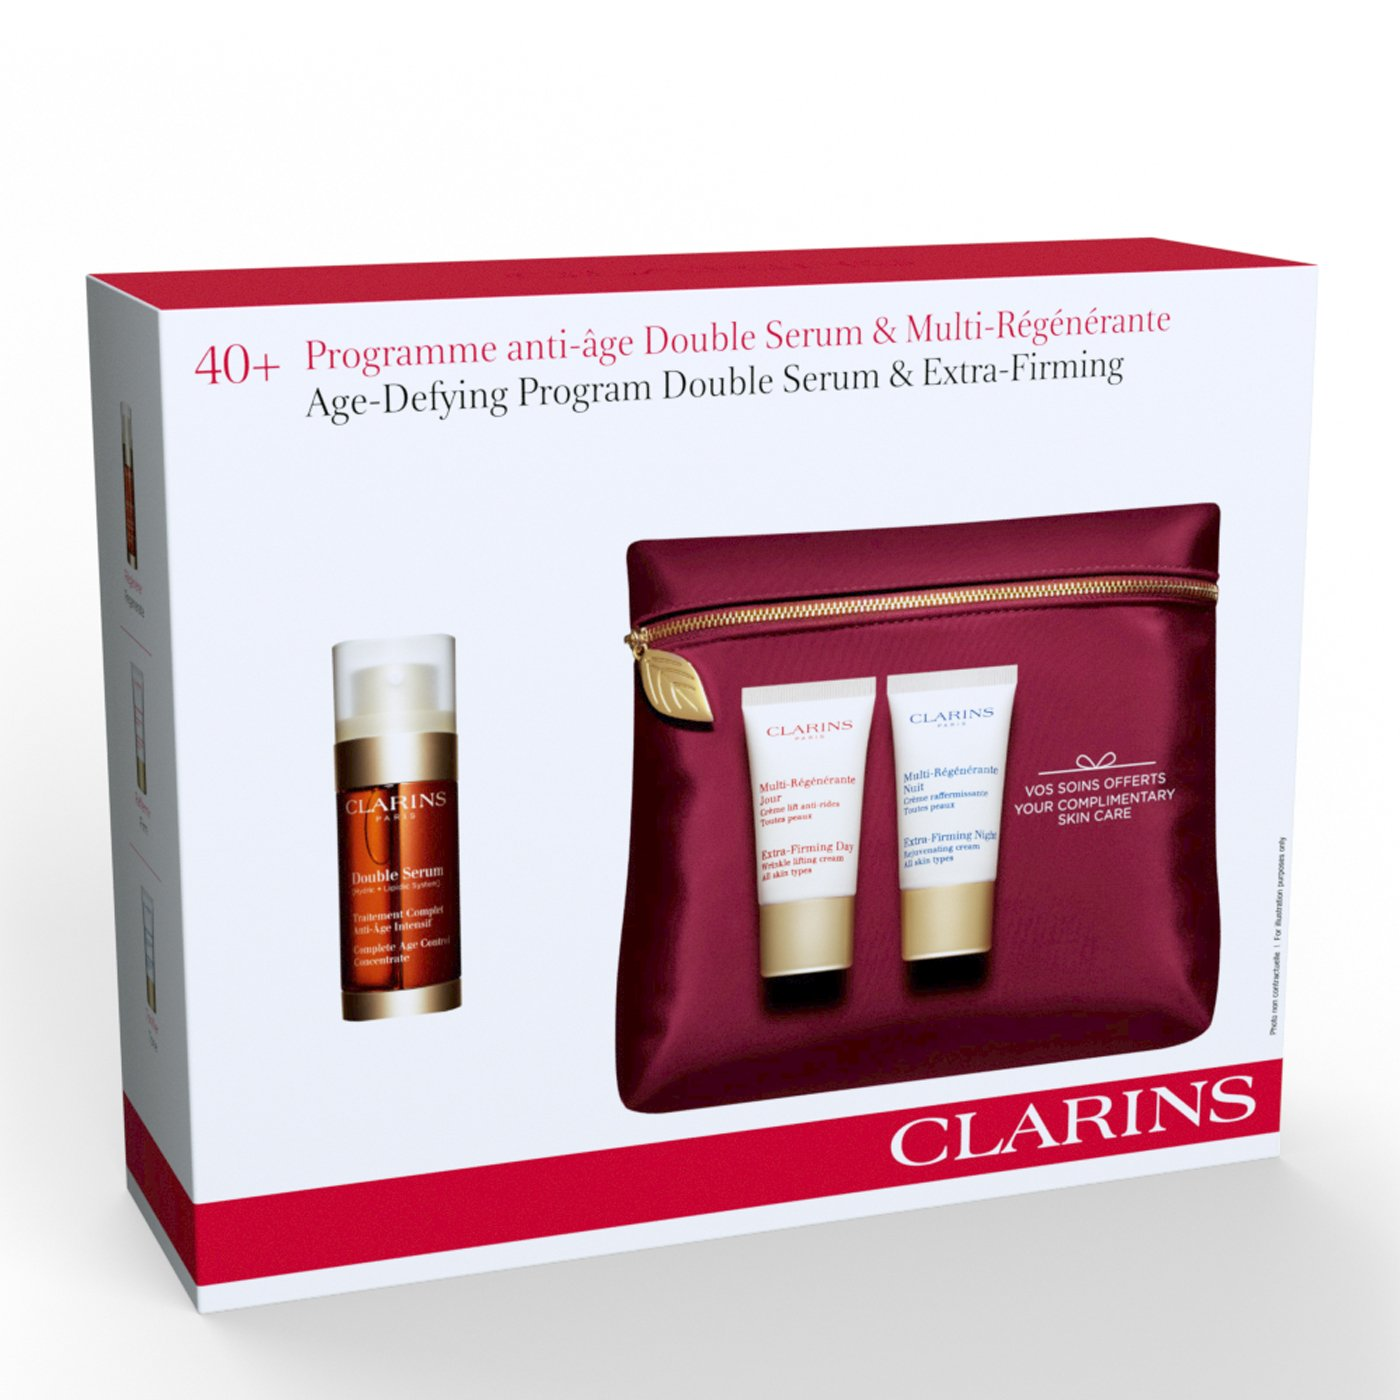 Super Restorative Remodeling Serum by Clarins #10